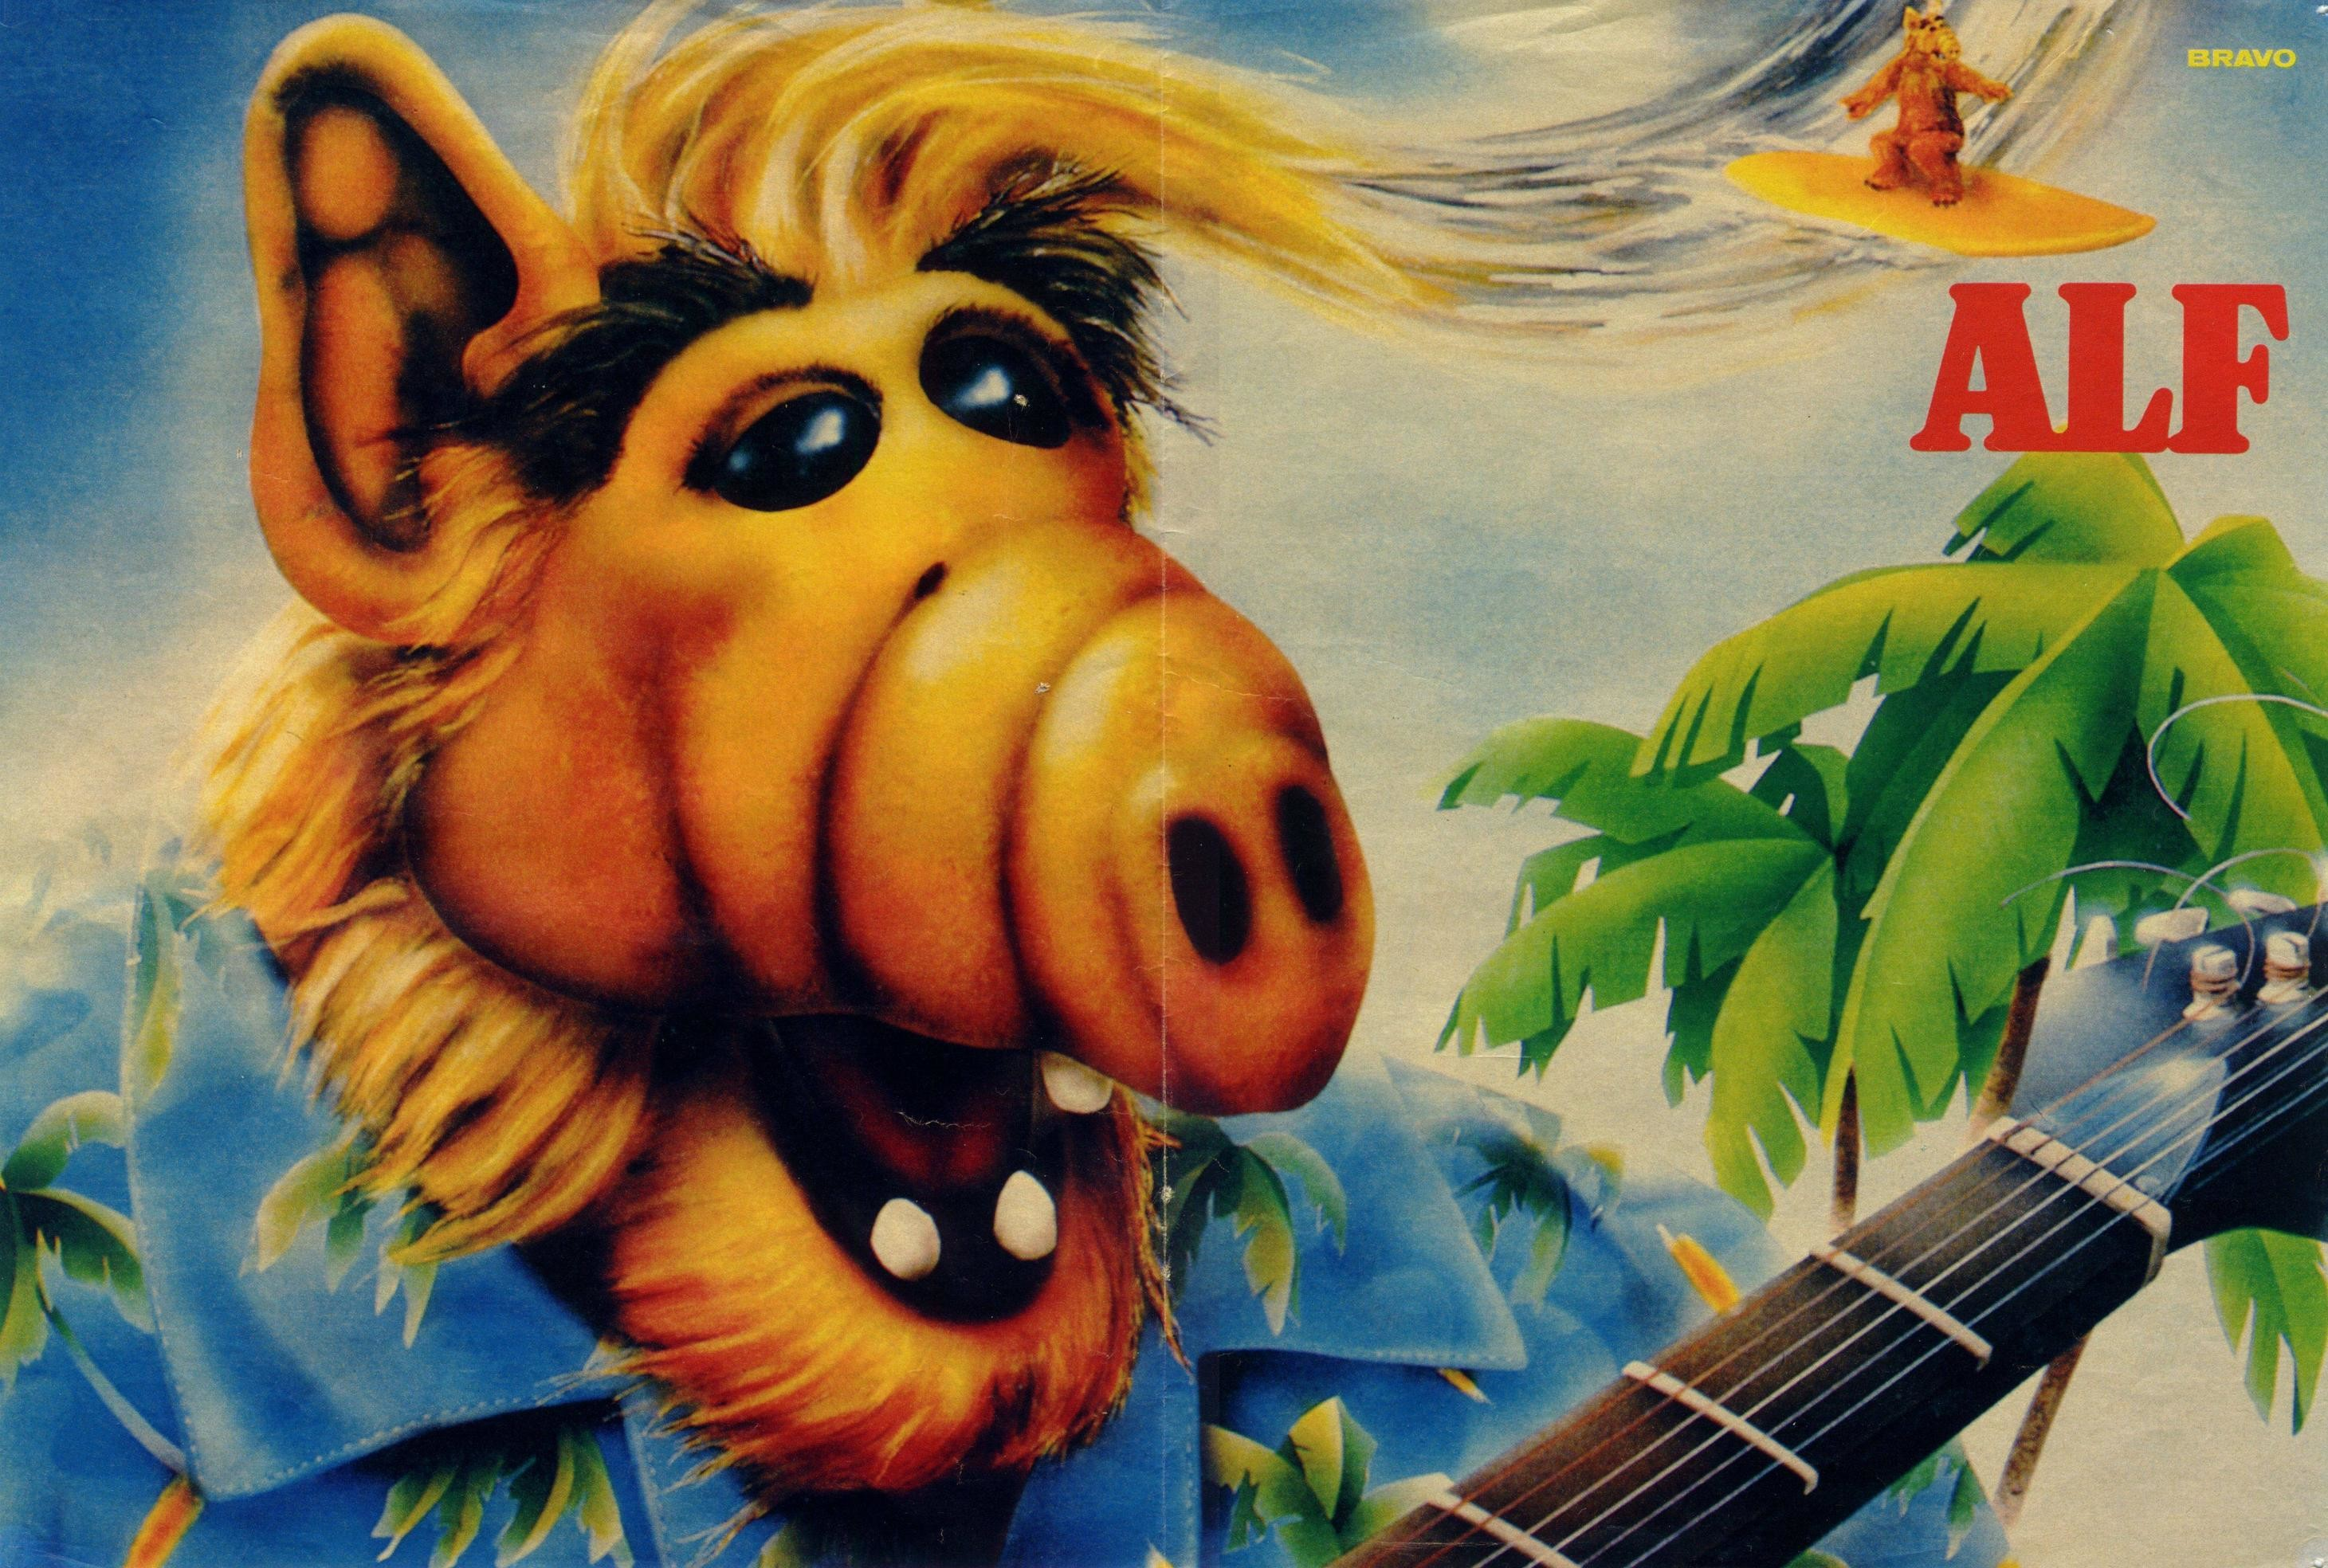 2921x1968 1 Alf Wallpapers | Alf Backgrounds